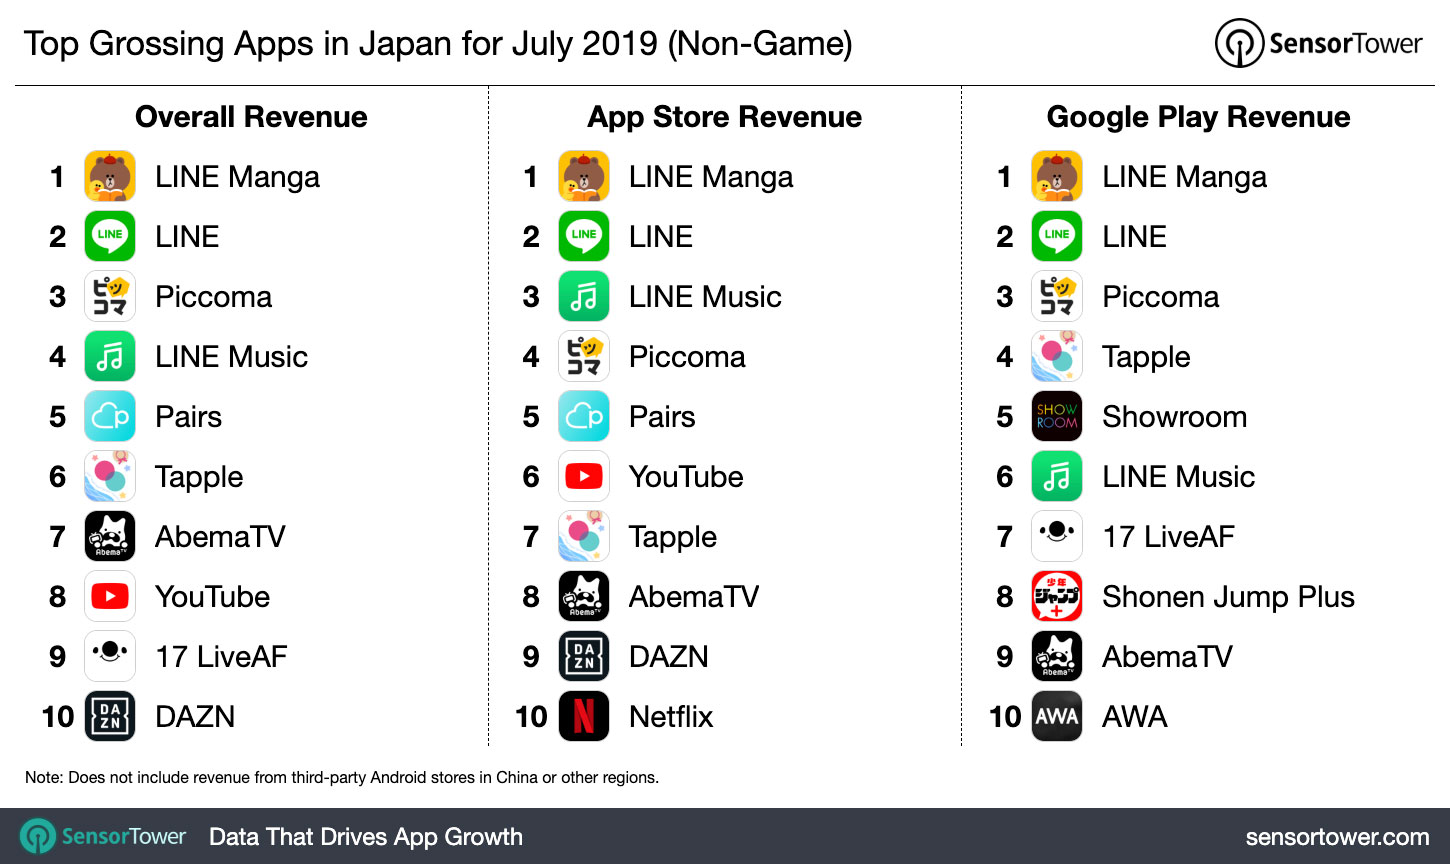 Top Grossing Apps in Japan for July 2019